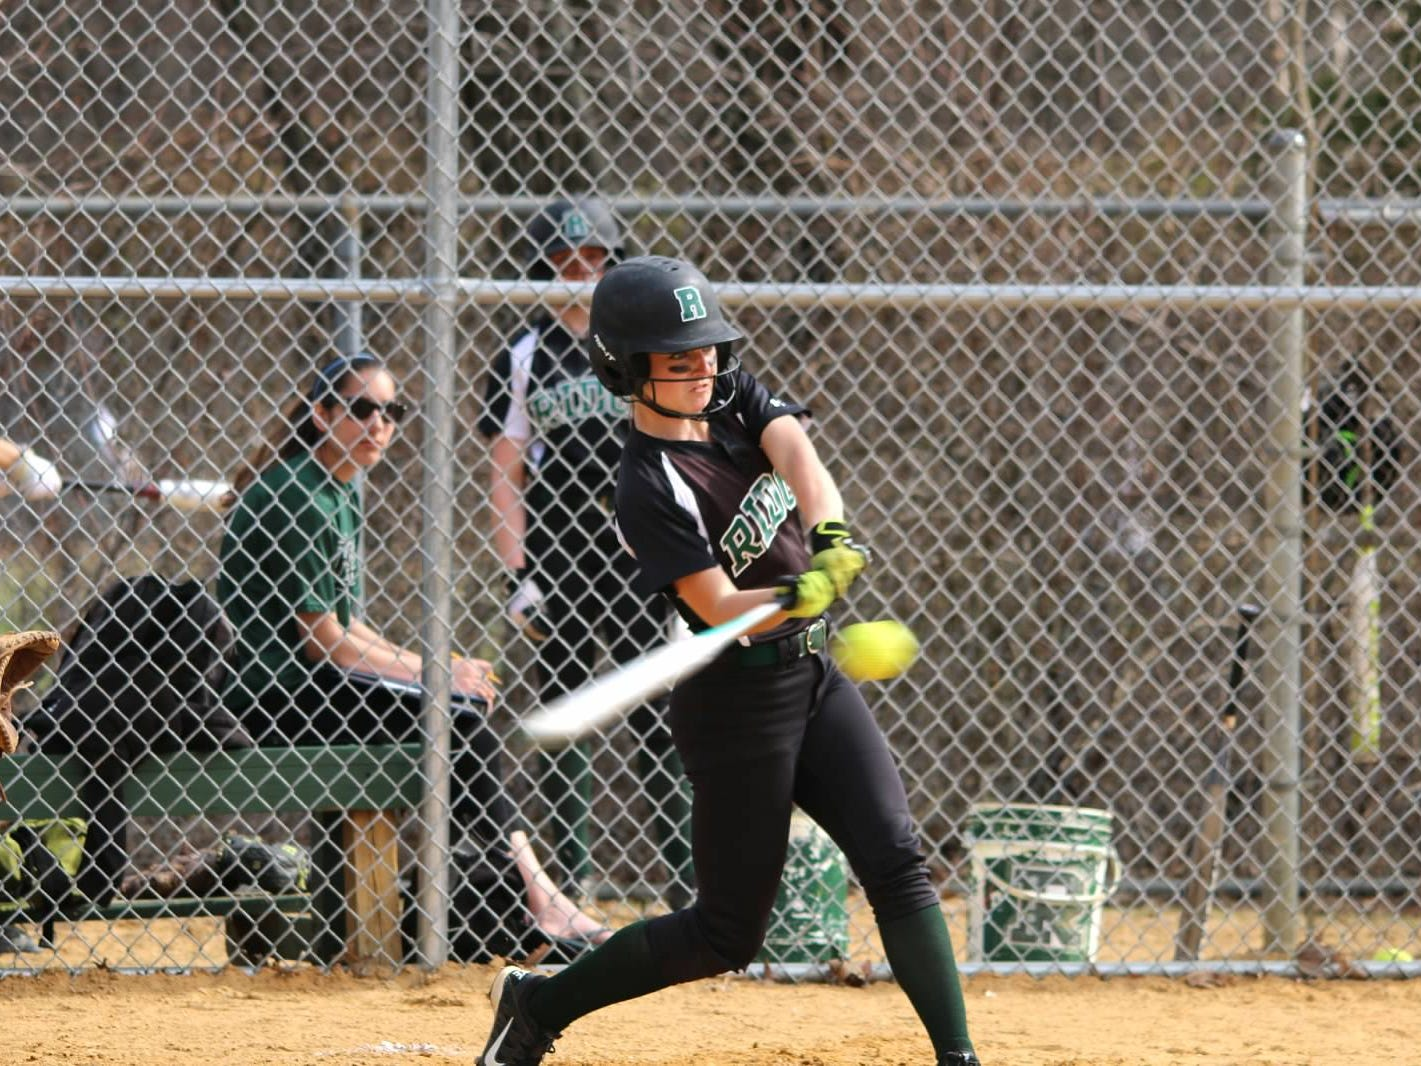 Three-sport standout Kristina Mueller was a four-year starter and captain for the Ridge softball team before a concussion last week ended her season and varsity career